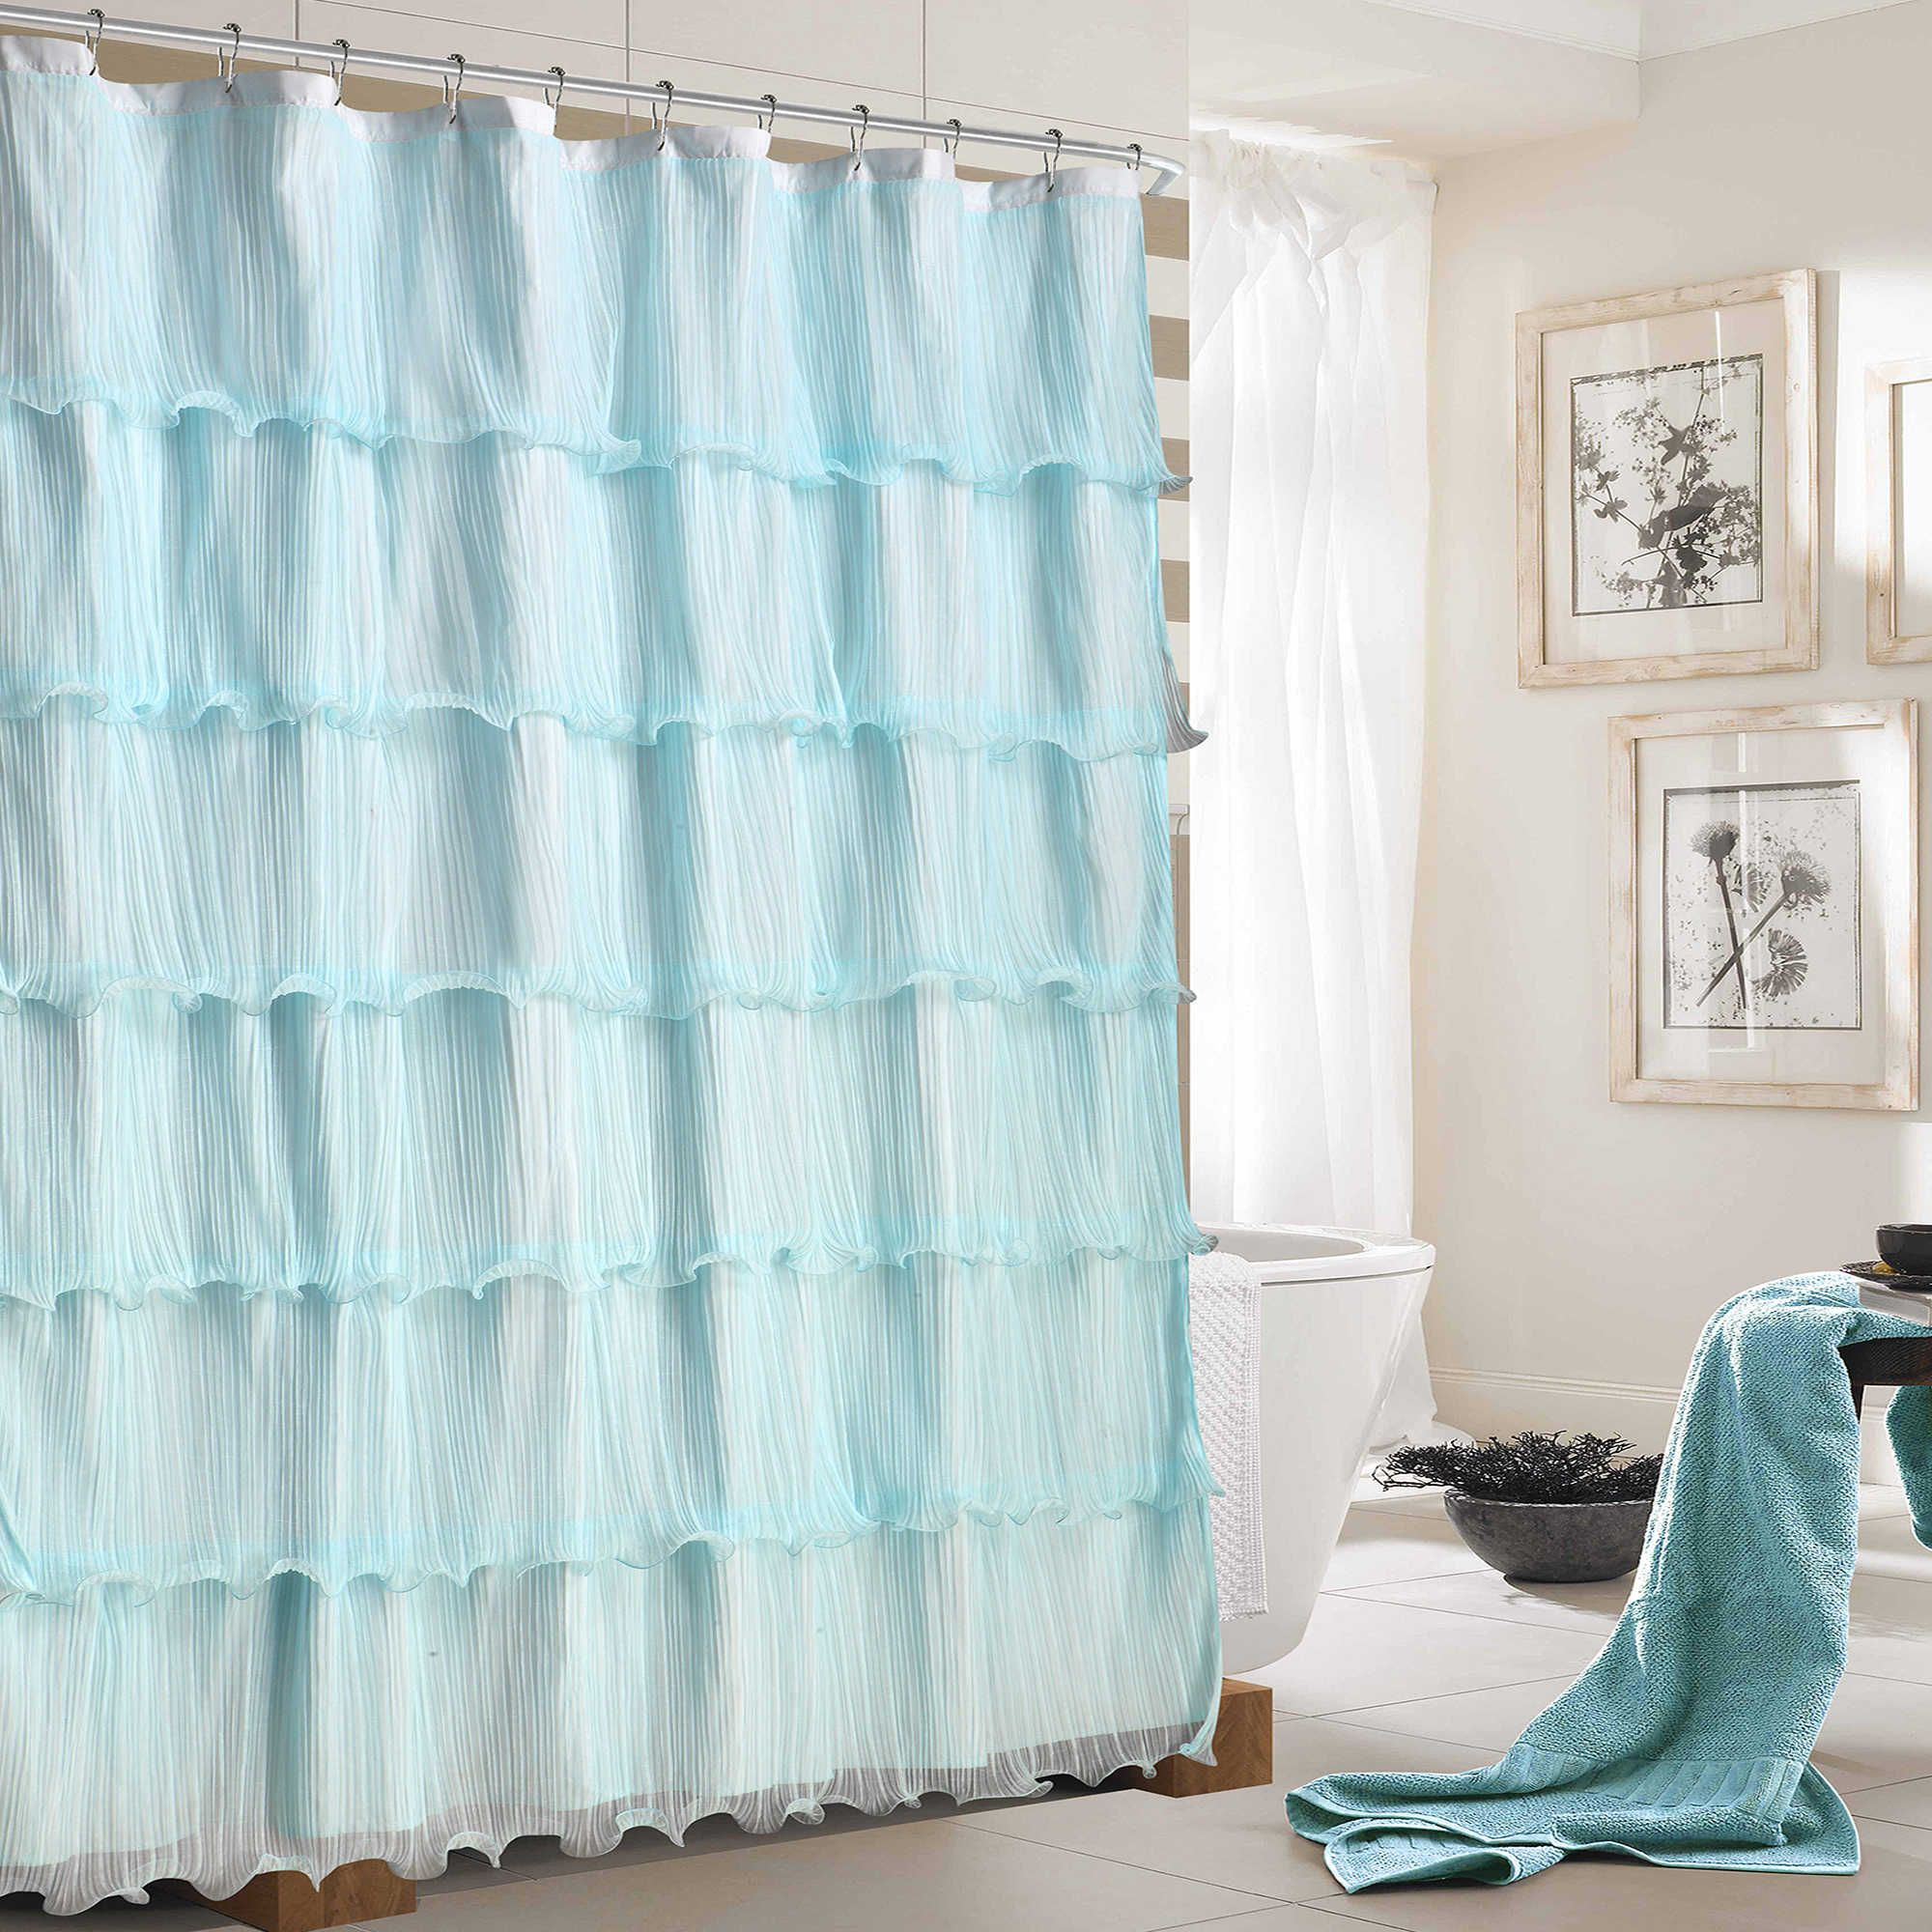 Dainty Home Lily Ruffled Shower Curtain In Light Blue Ruffle Shower Curtains Silver Shower Curtain Blue Shower Curtains